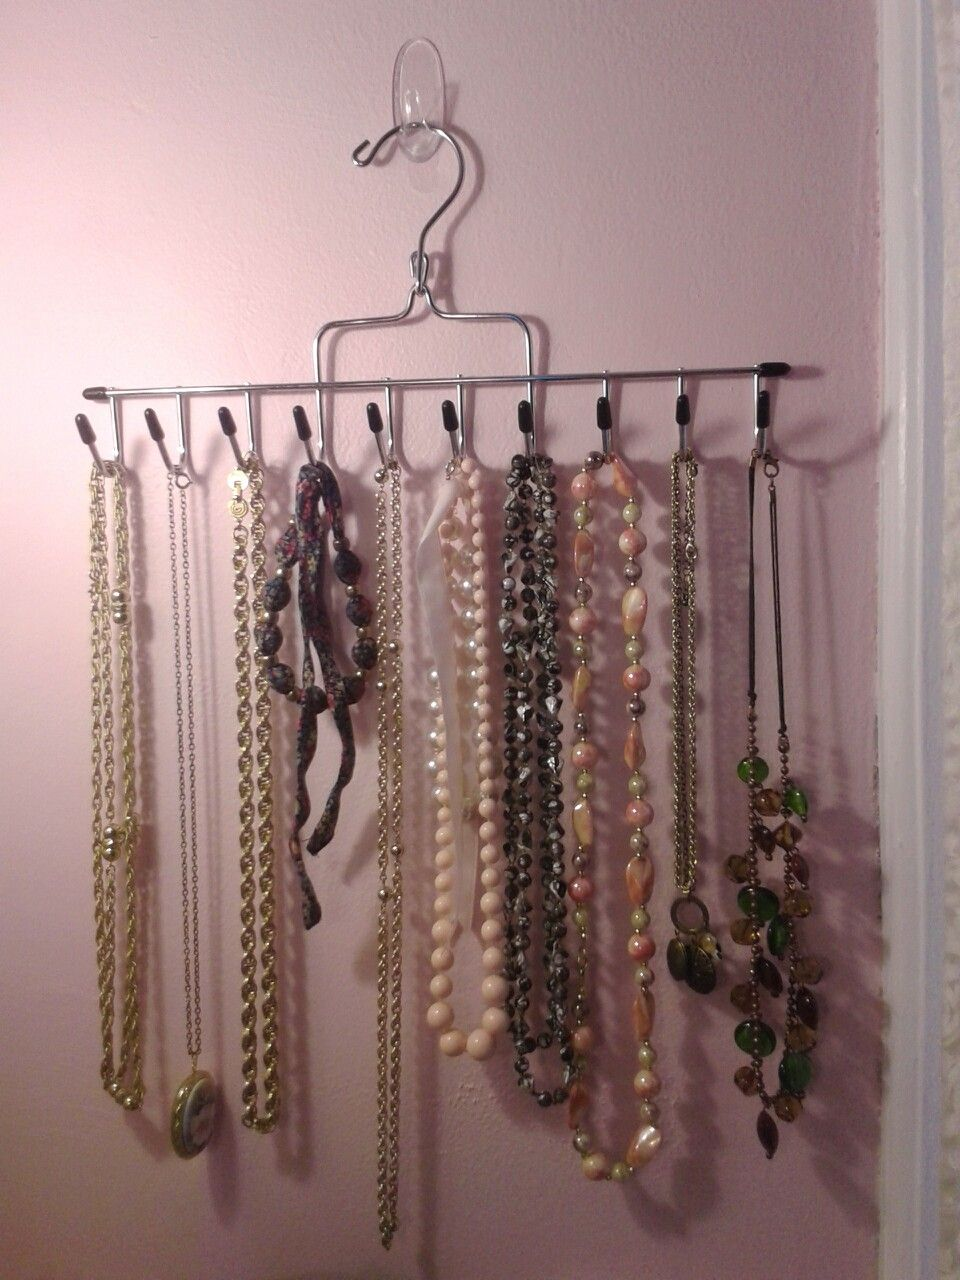 A great way to organize jewelry! A command strips hook and a